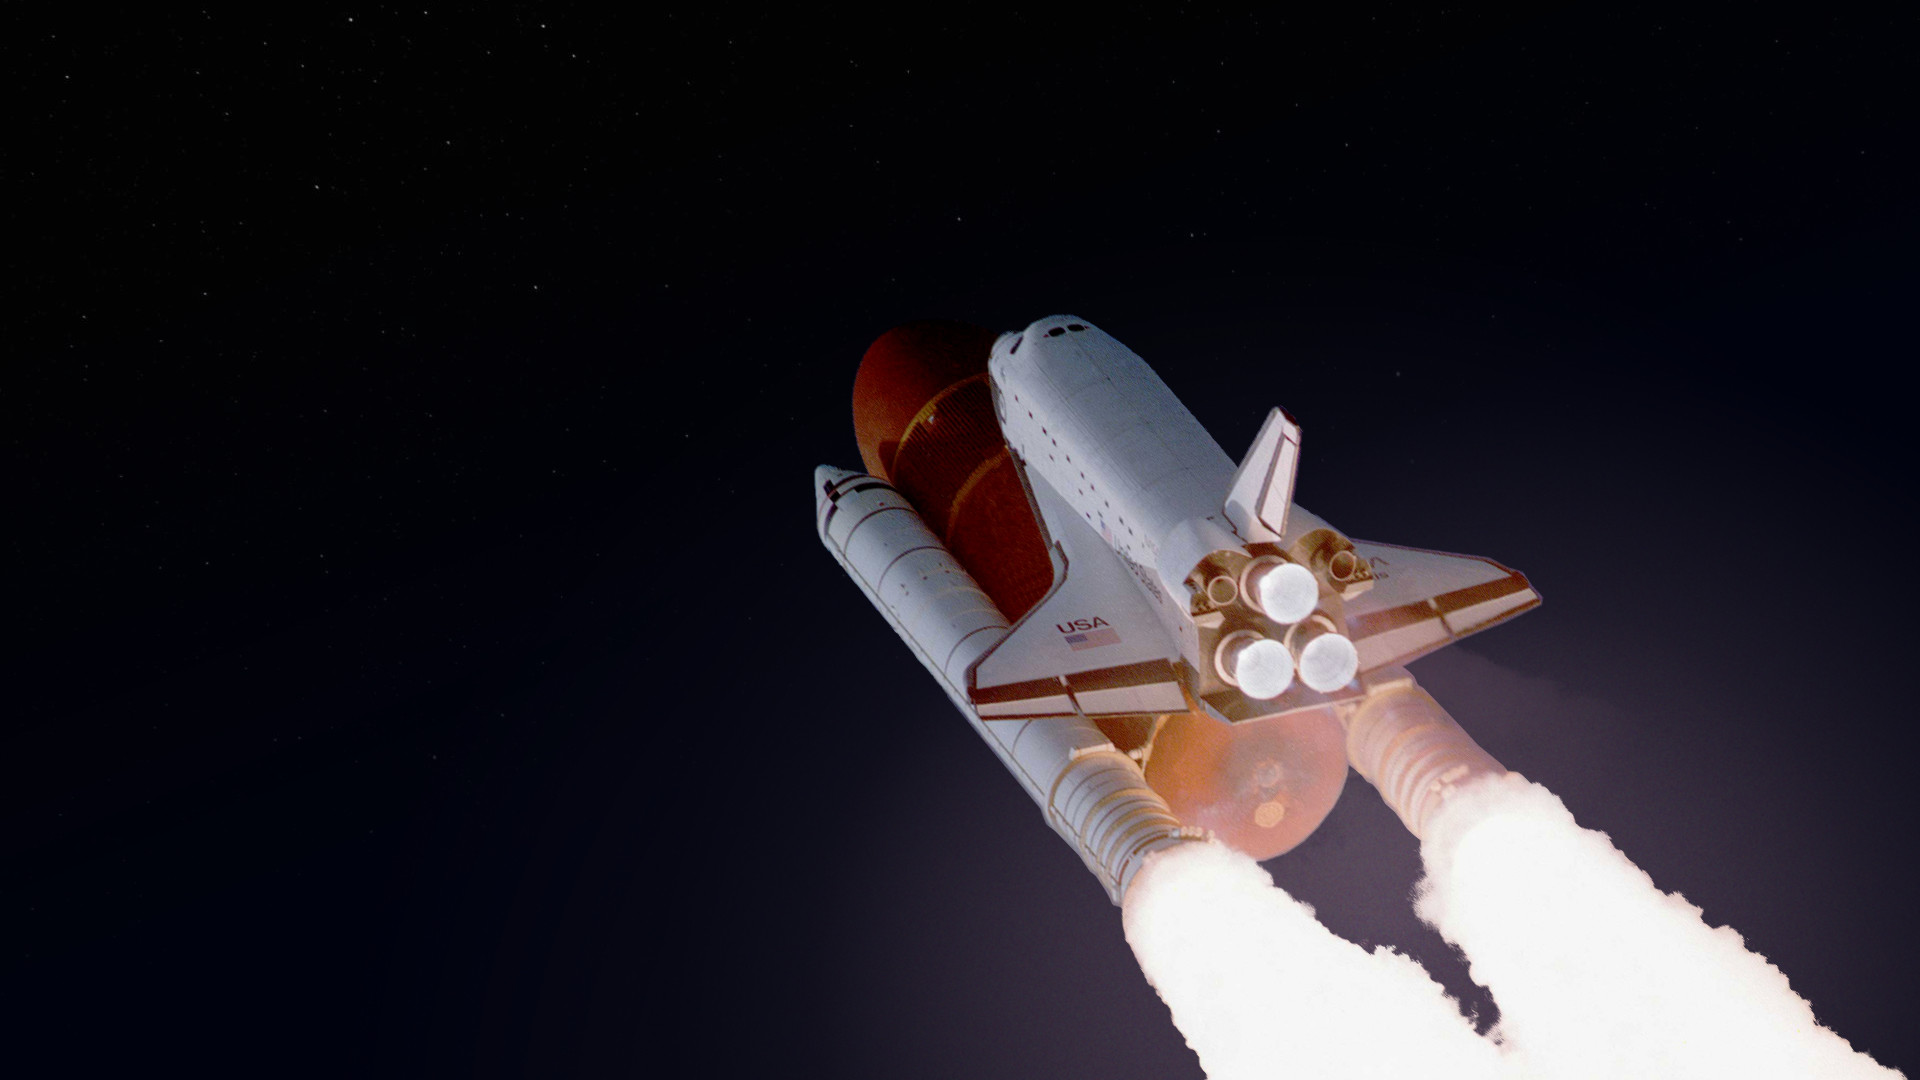 1920x1080 Space Shuttle Atlantis Wallpaper